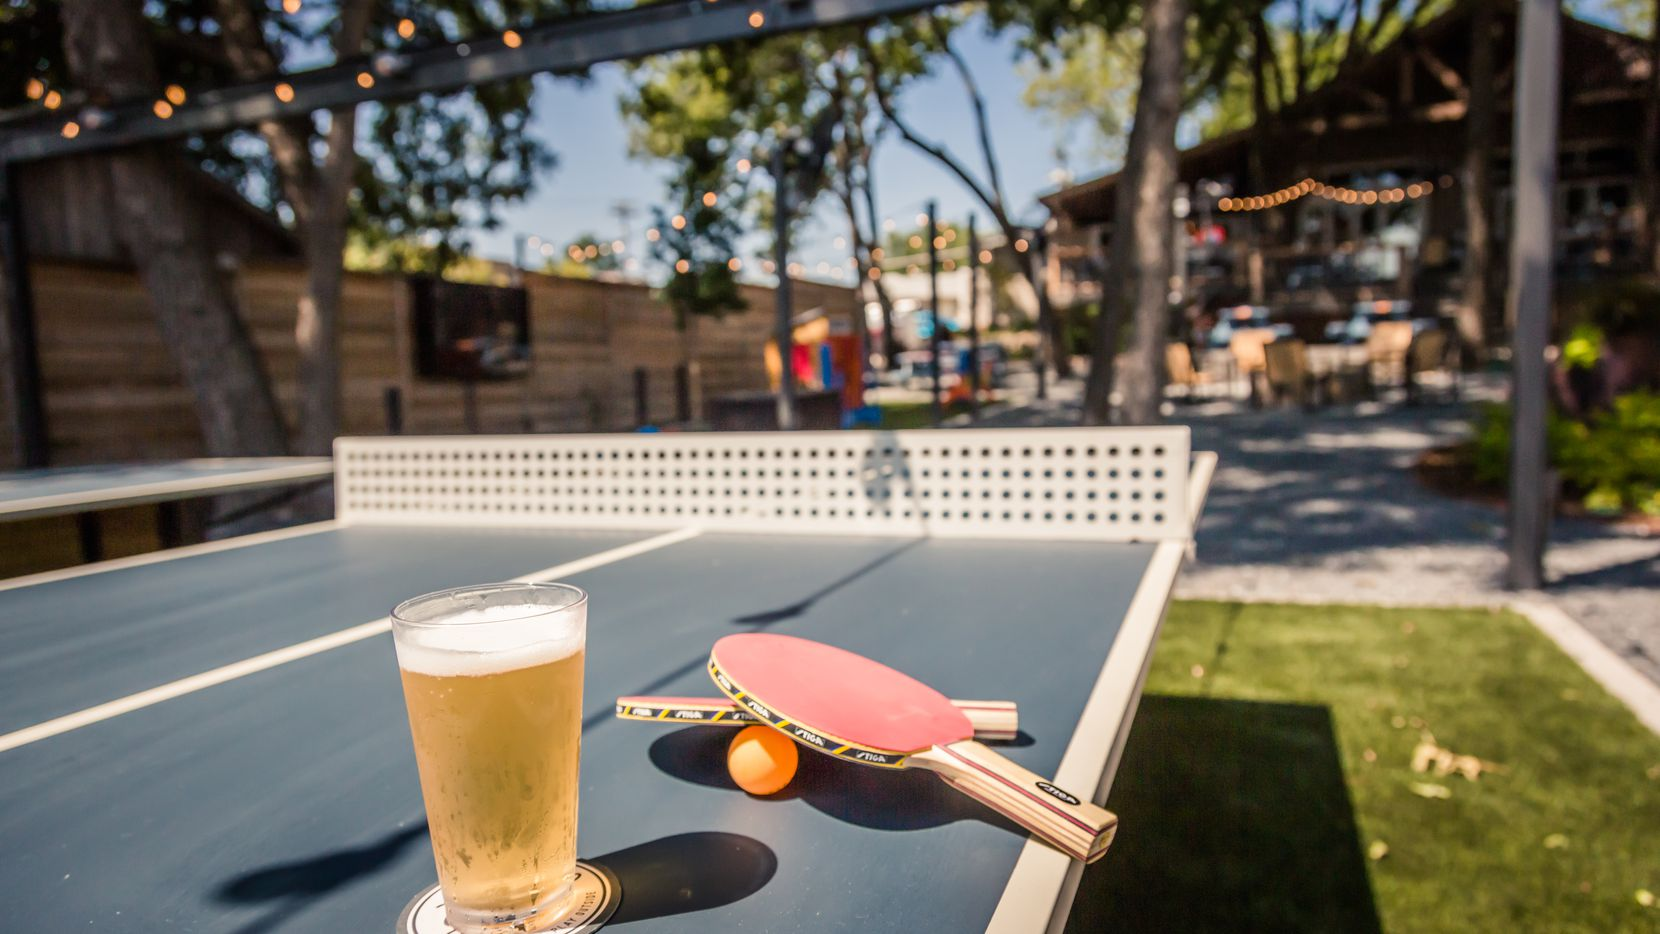 Patrons at The Yard in McKinney spent $270,930 in alcohol in May. The city's restaurants and bars reported $4.8 million in alcohol sales in May, up 143% since the state fully reopened.